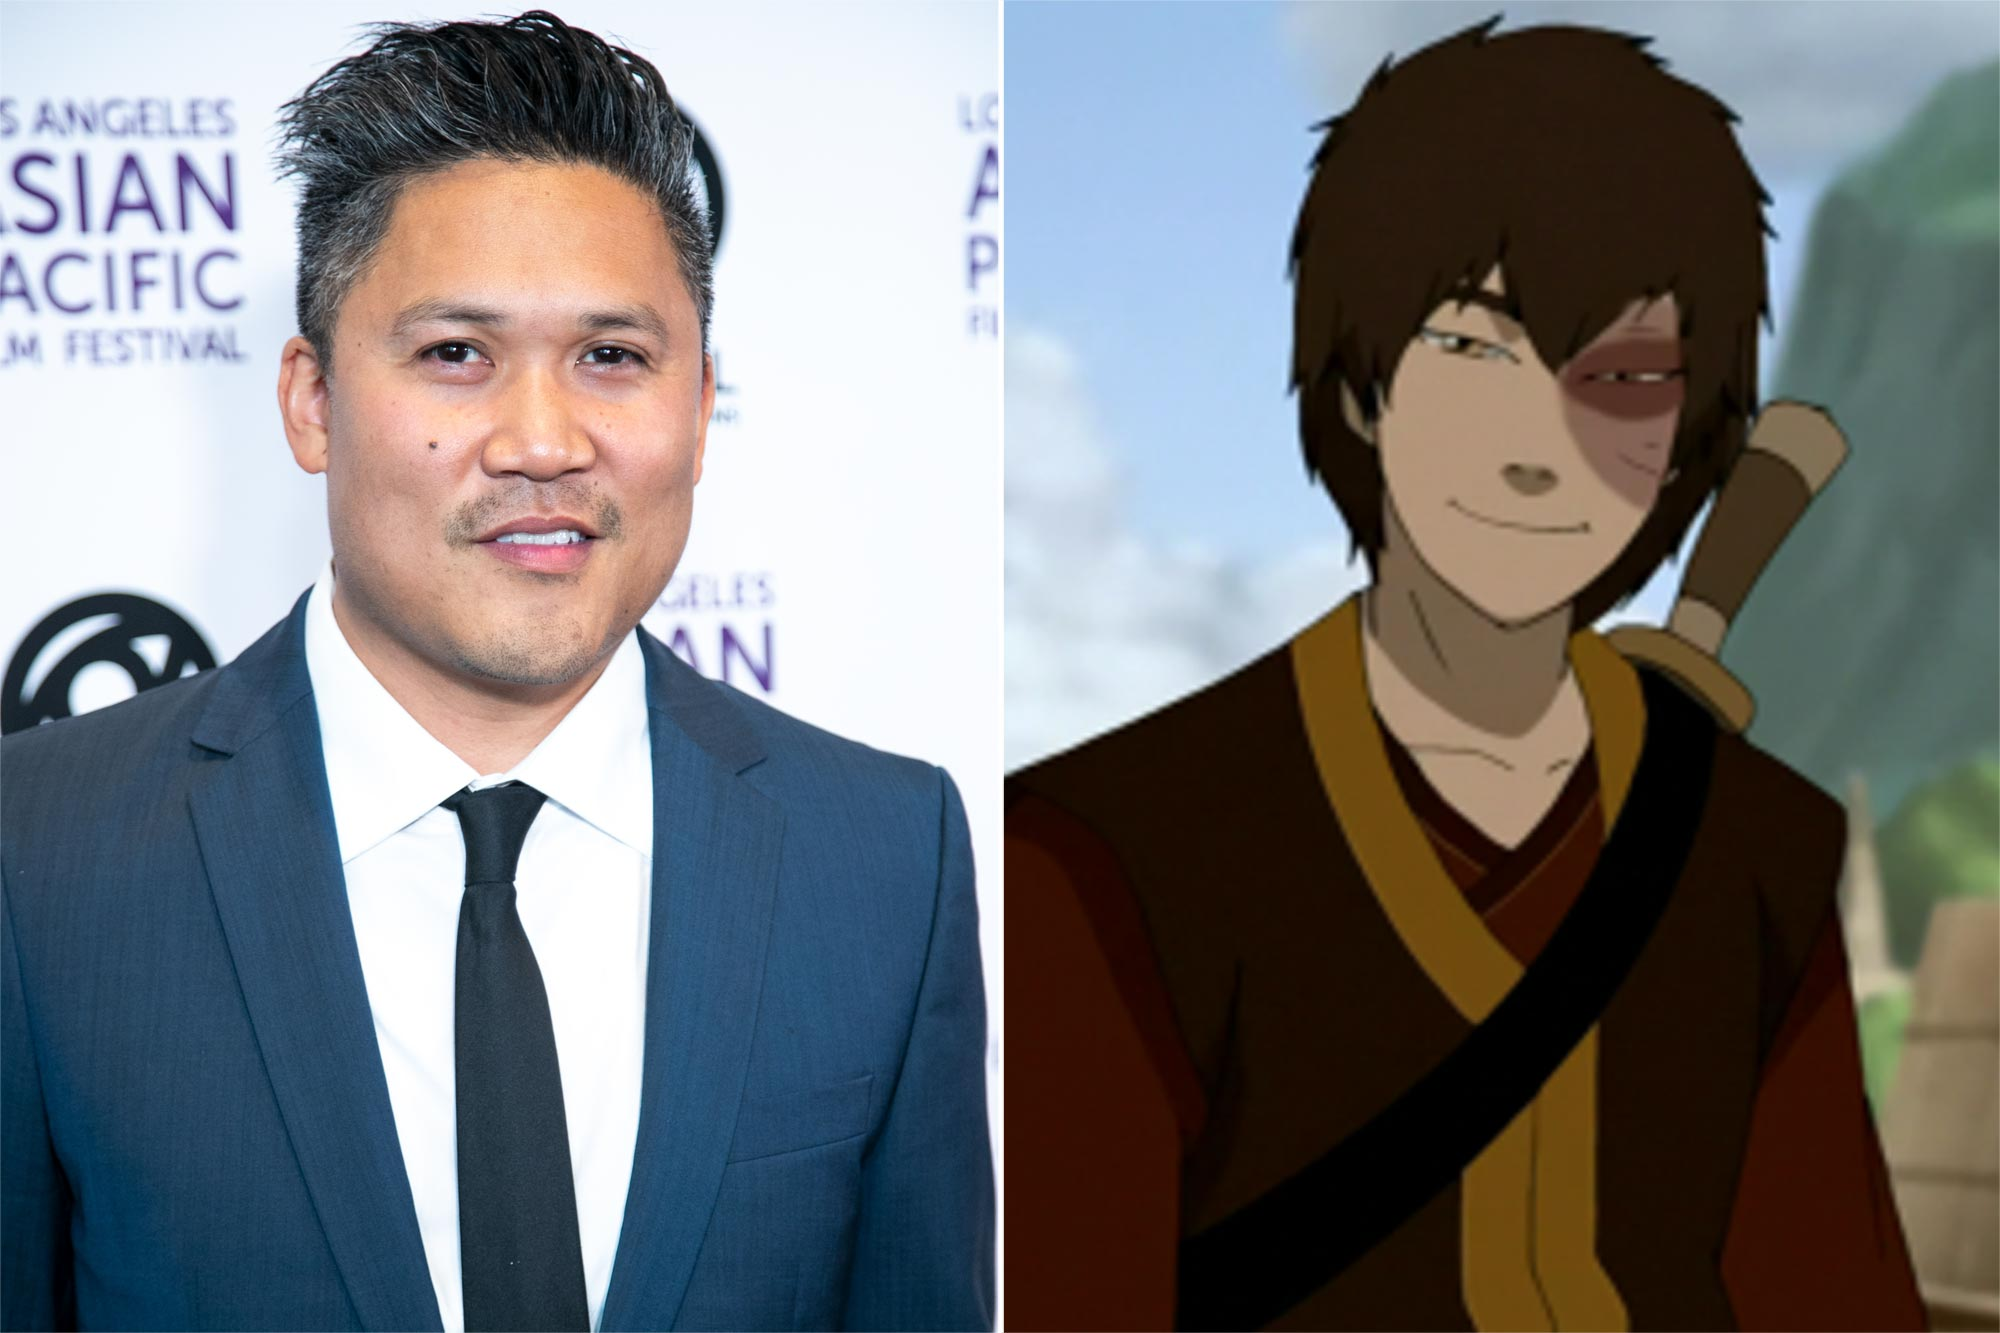 Dante Basco, Avatar: The Last Airbender